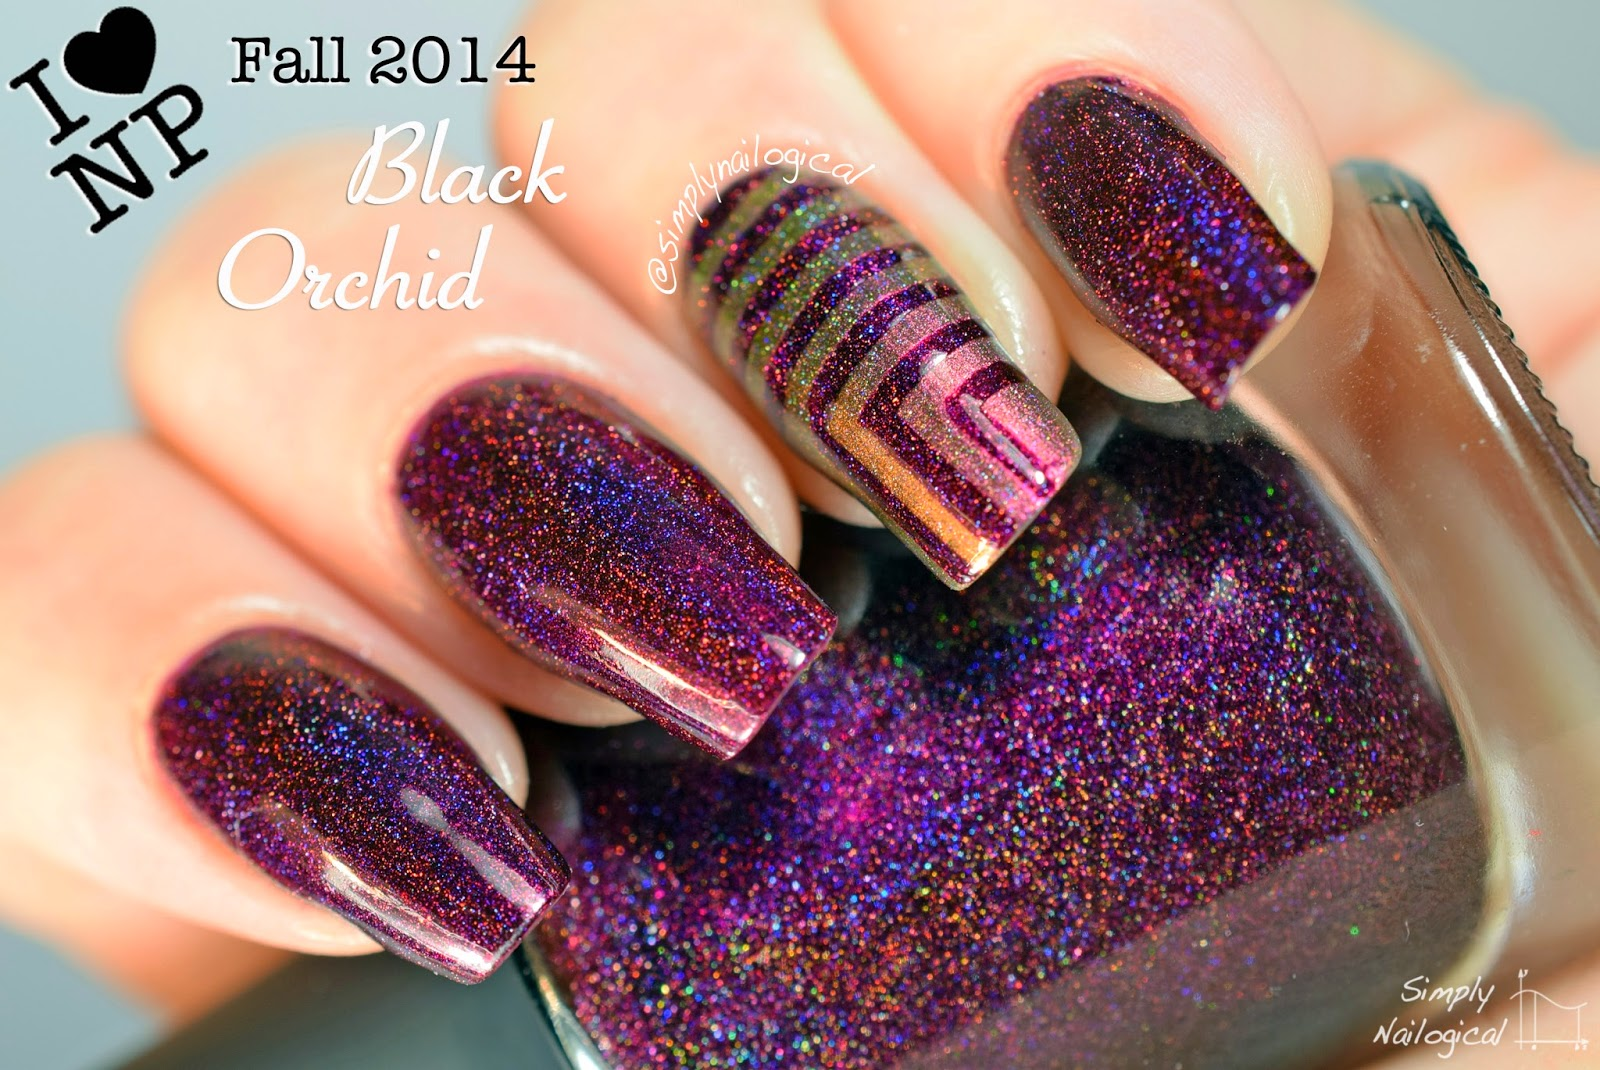 Black Orchid - ILNP Fall 2014 collection swatch